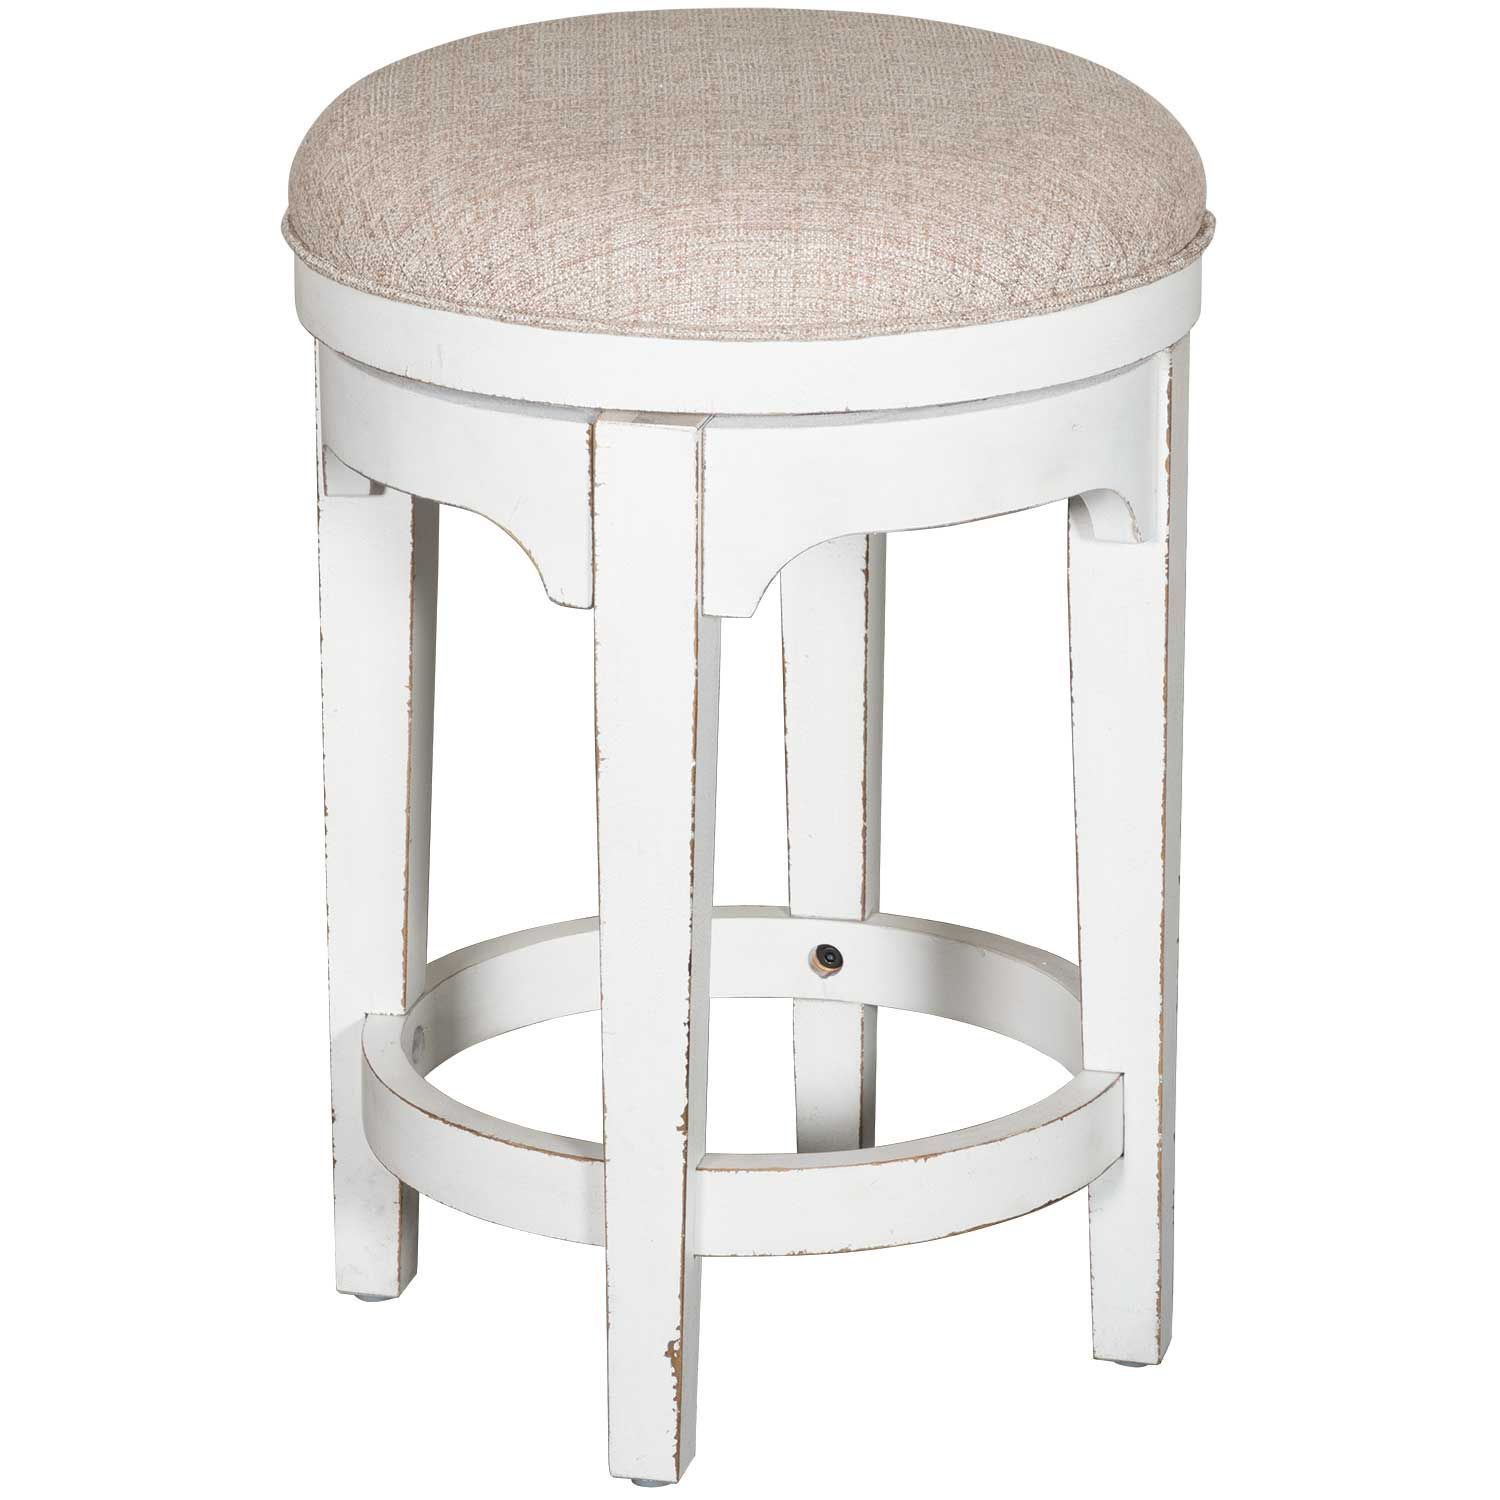 Magnolia Manor Console Swivel Barstool | 244 Ot9003 | Liberty With Manor Grey Swivel Chairs (View 14 of 25)